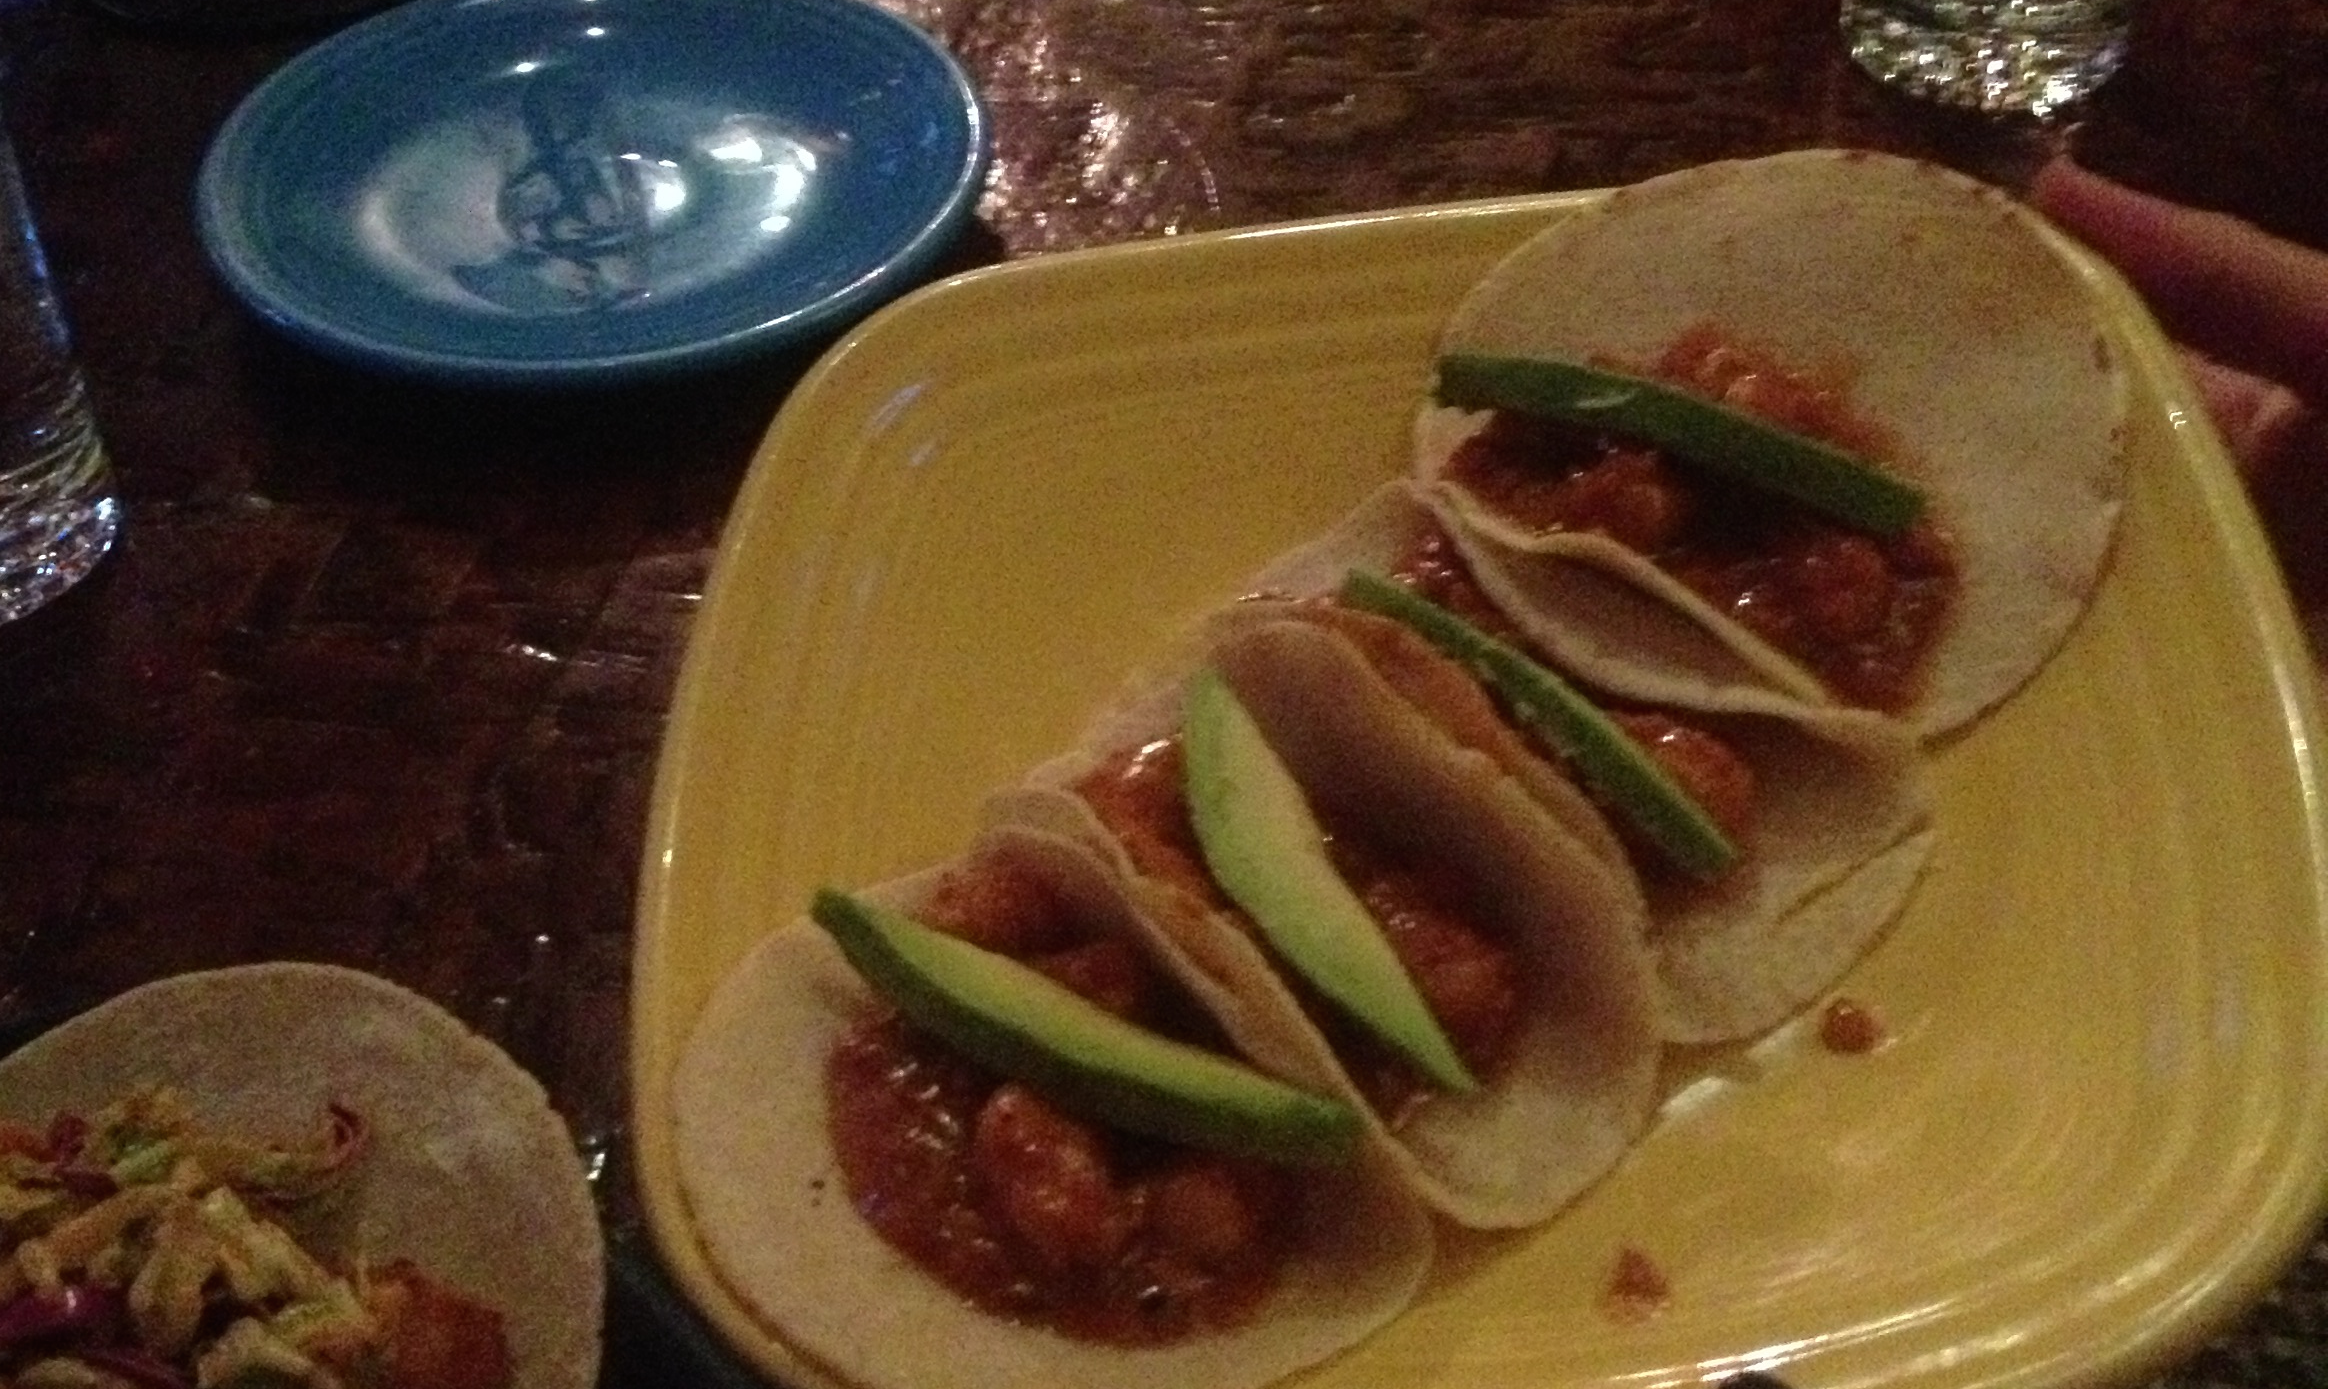 Best Mexican Restaurants in NYC - Mercadito (shrimp tacos)